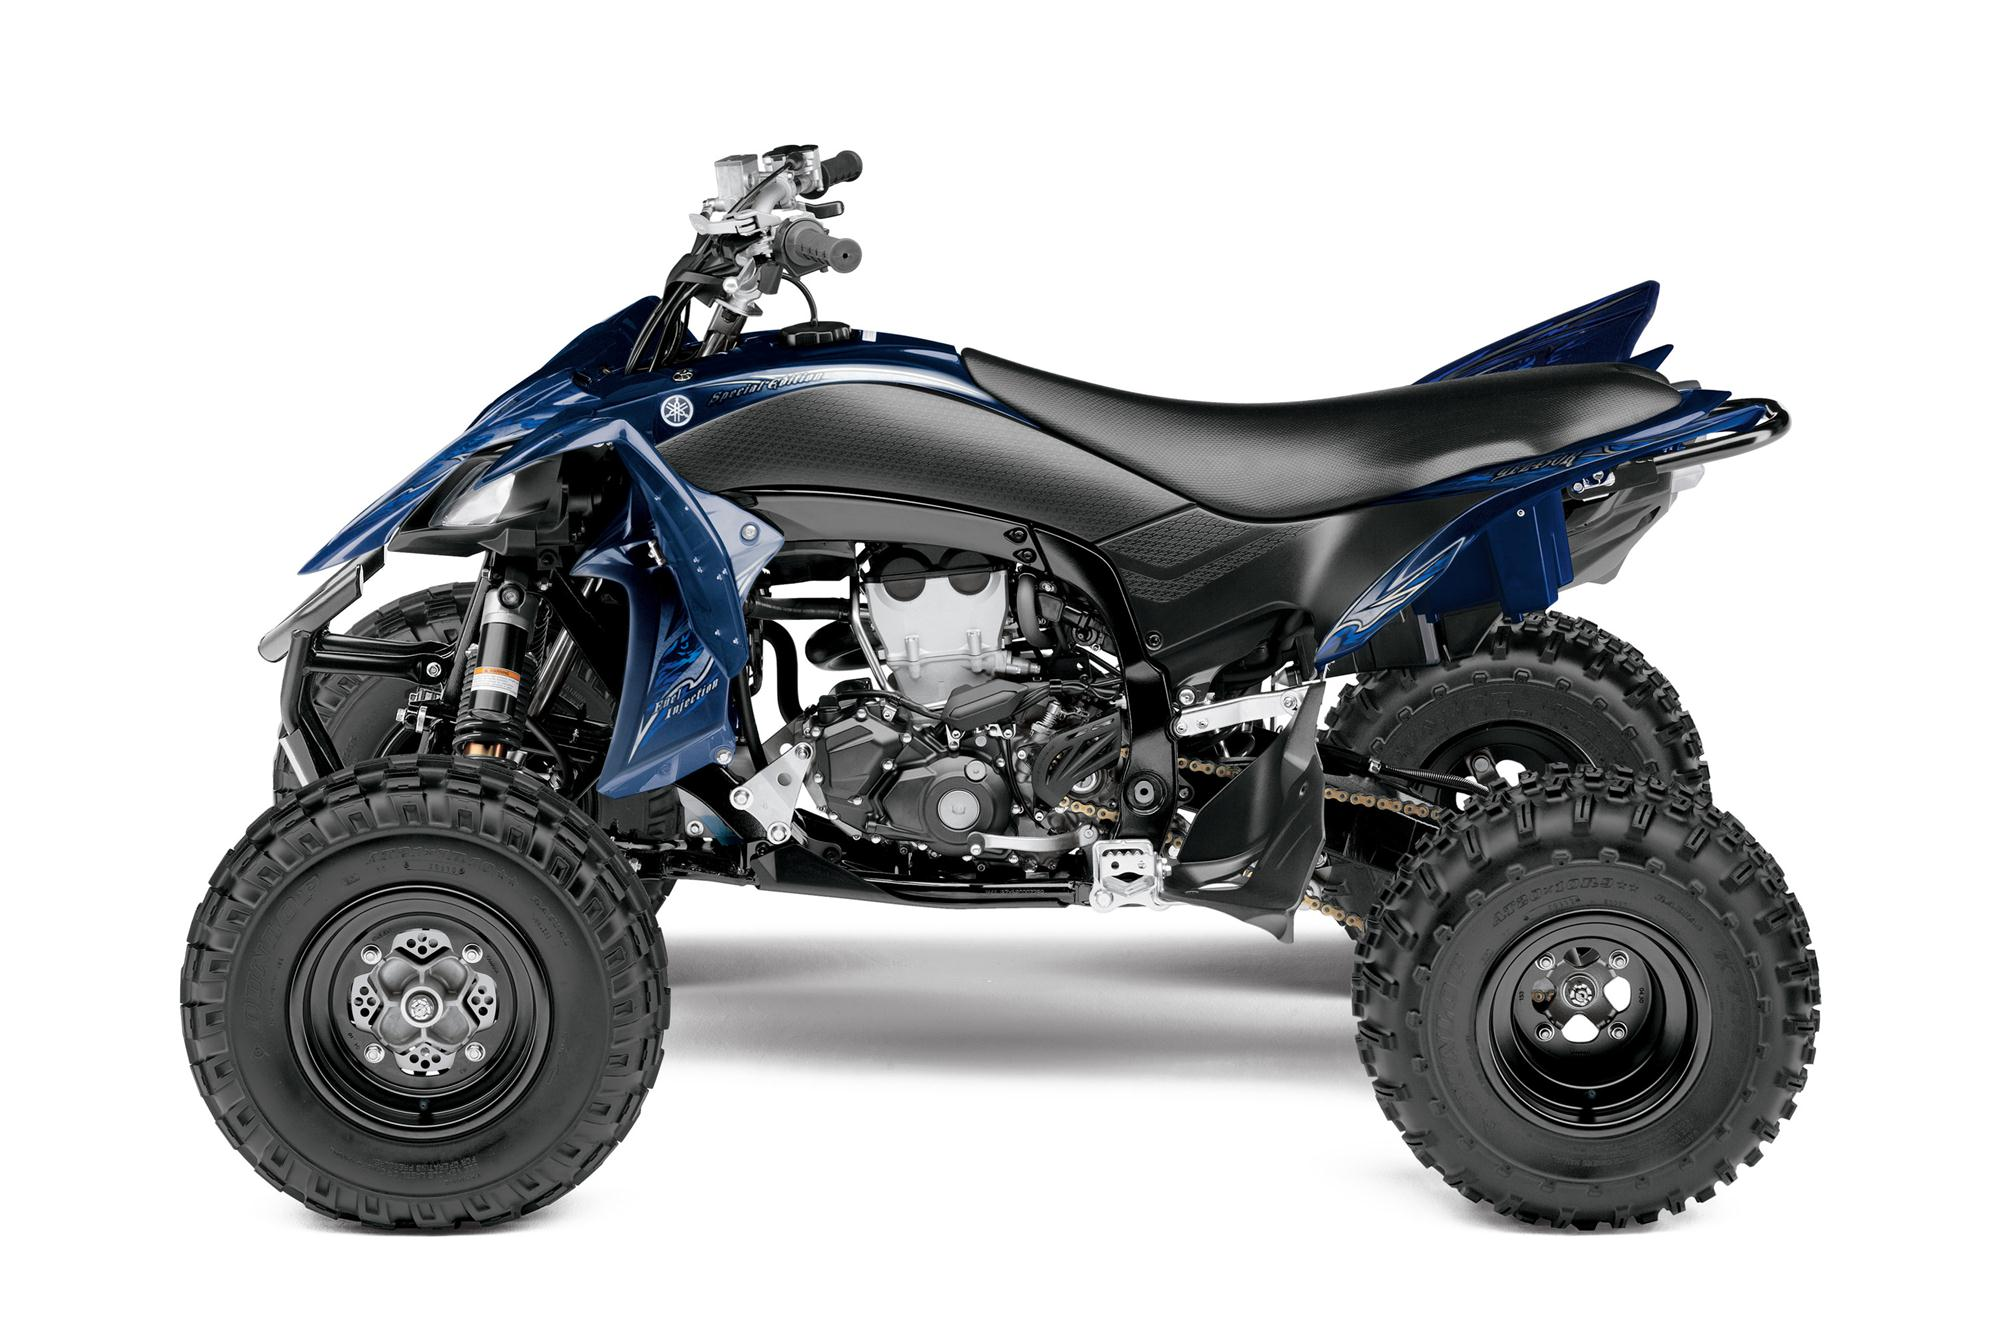 2013 yamaha yfz450r se atv motocross superlative autoevolution. Black Bedroom Furniture Sets. Home Design Ideas